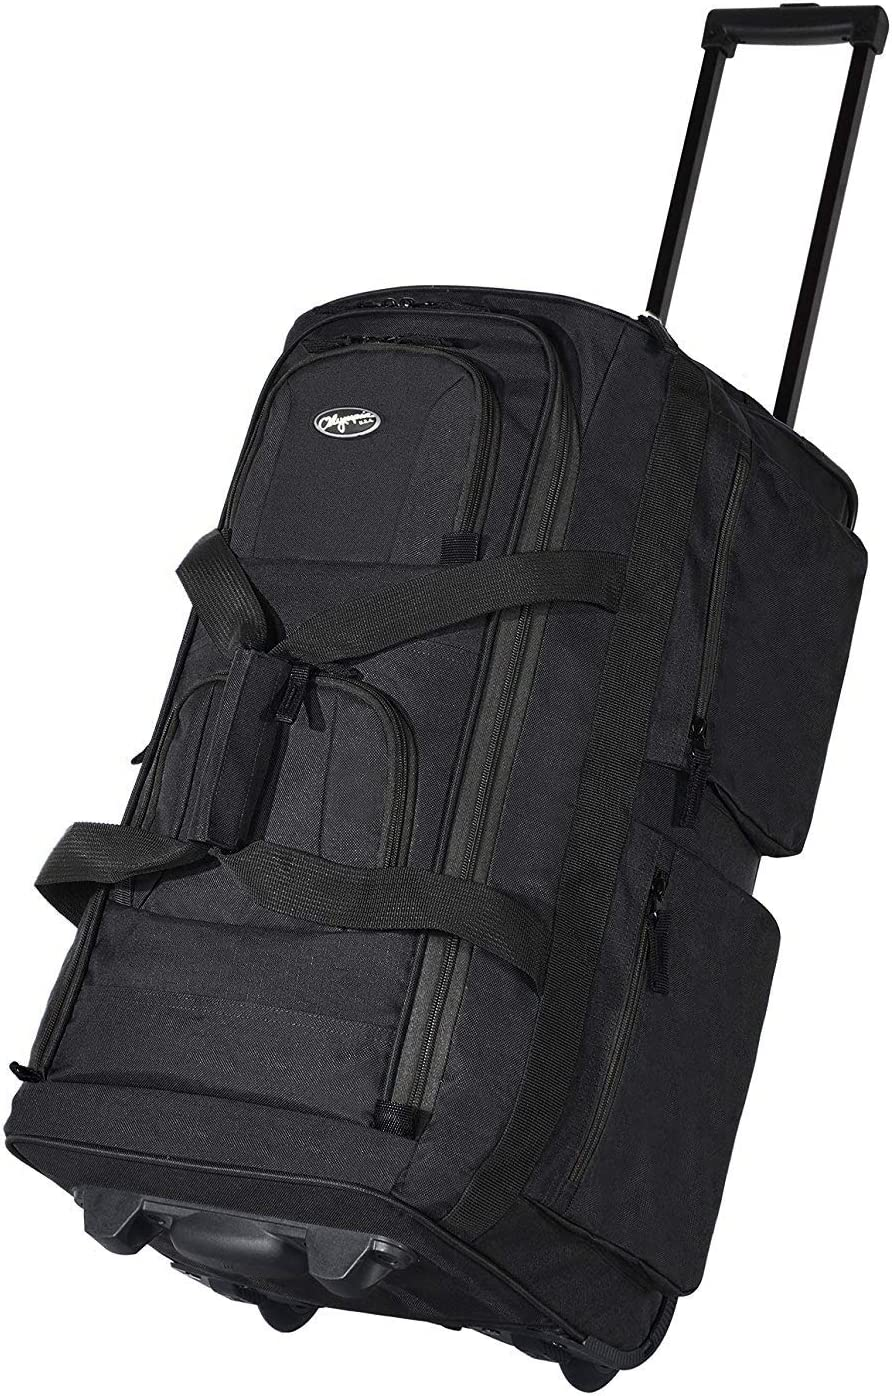 Olympia Luggage 22 8 Pocket Rolling Duffel Bag Black Gray